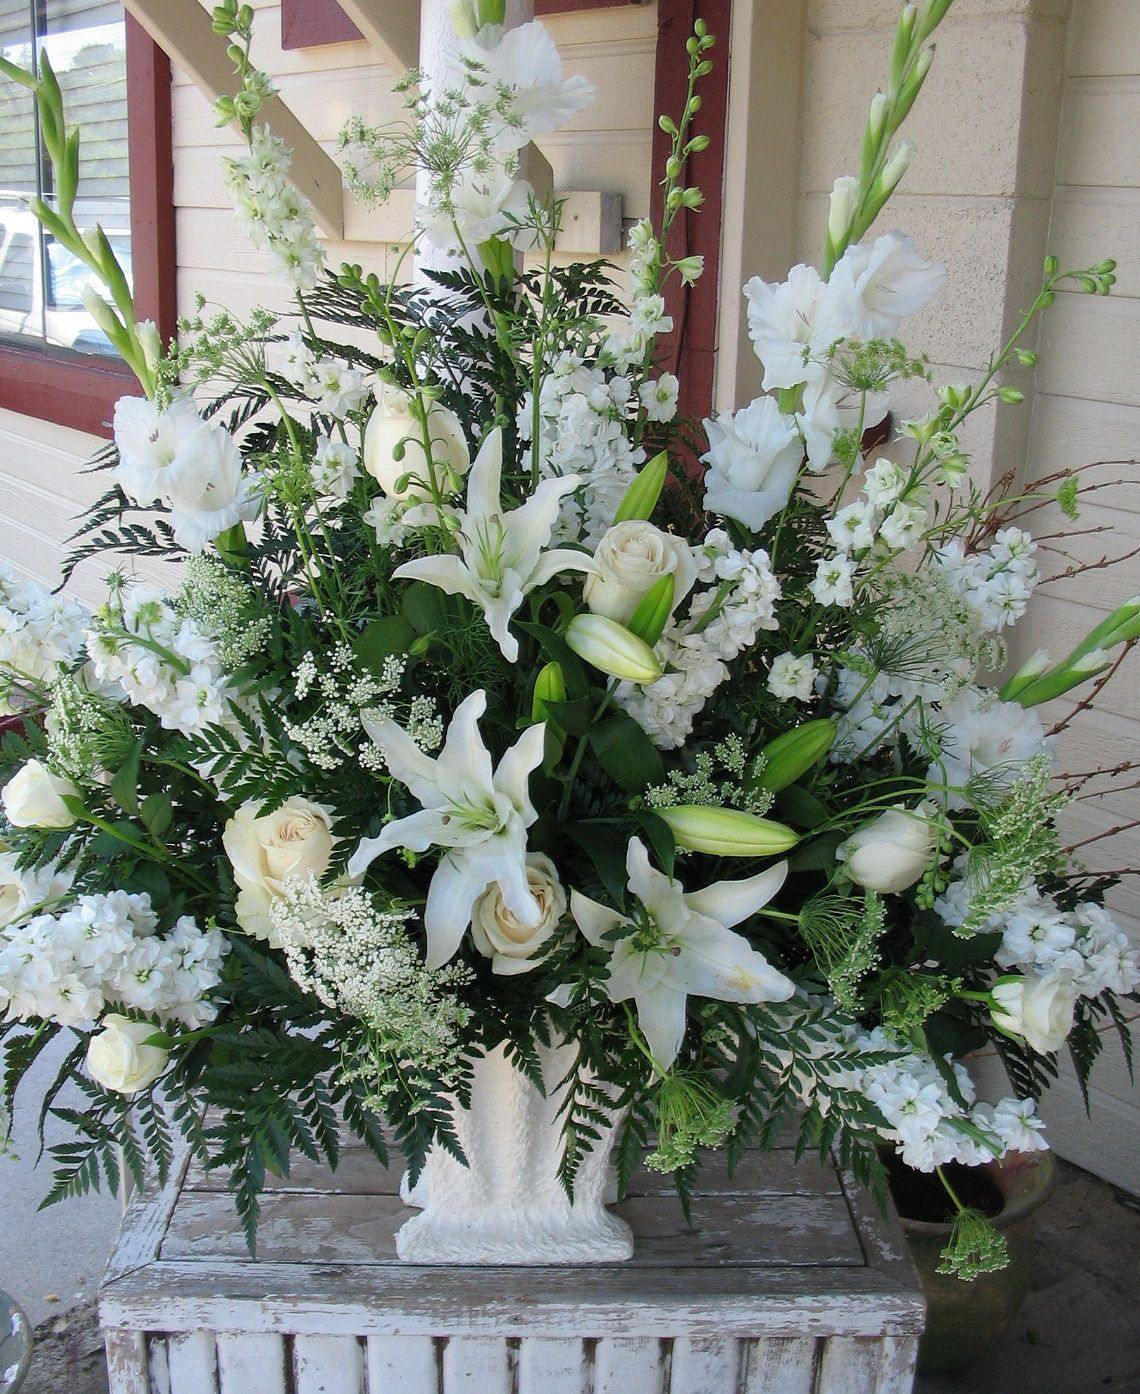 Church Altar Wedding Flower Arrangements: CHURCH WEDDING ALTER FLOOWERS